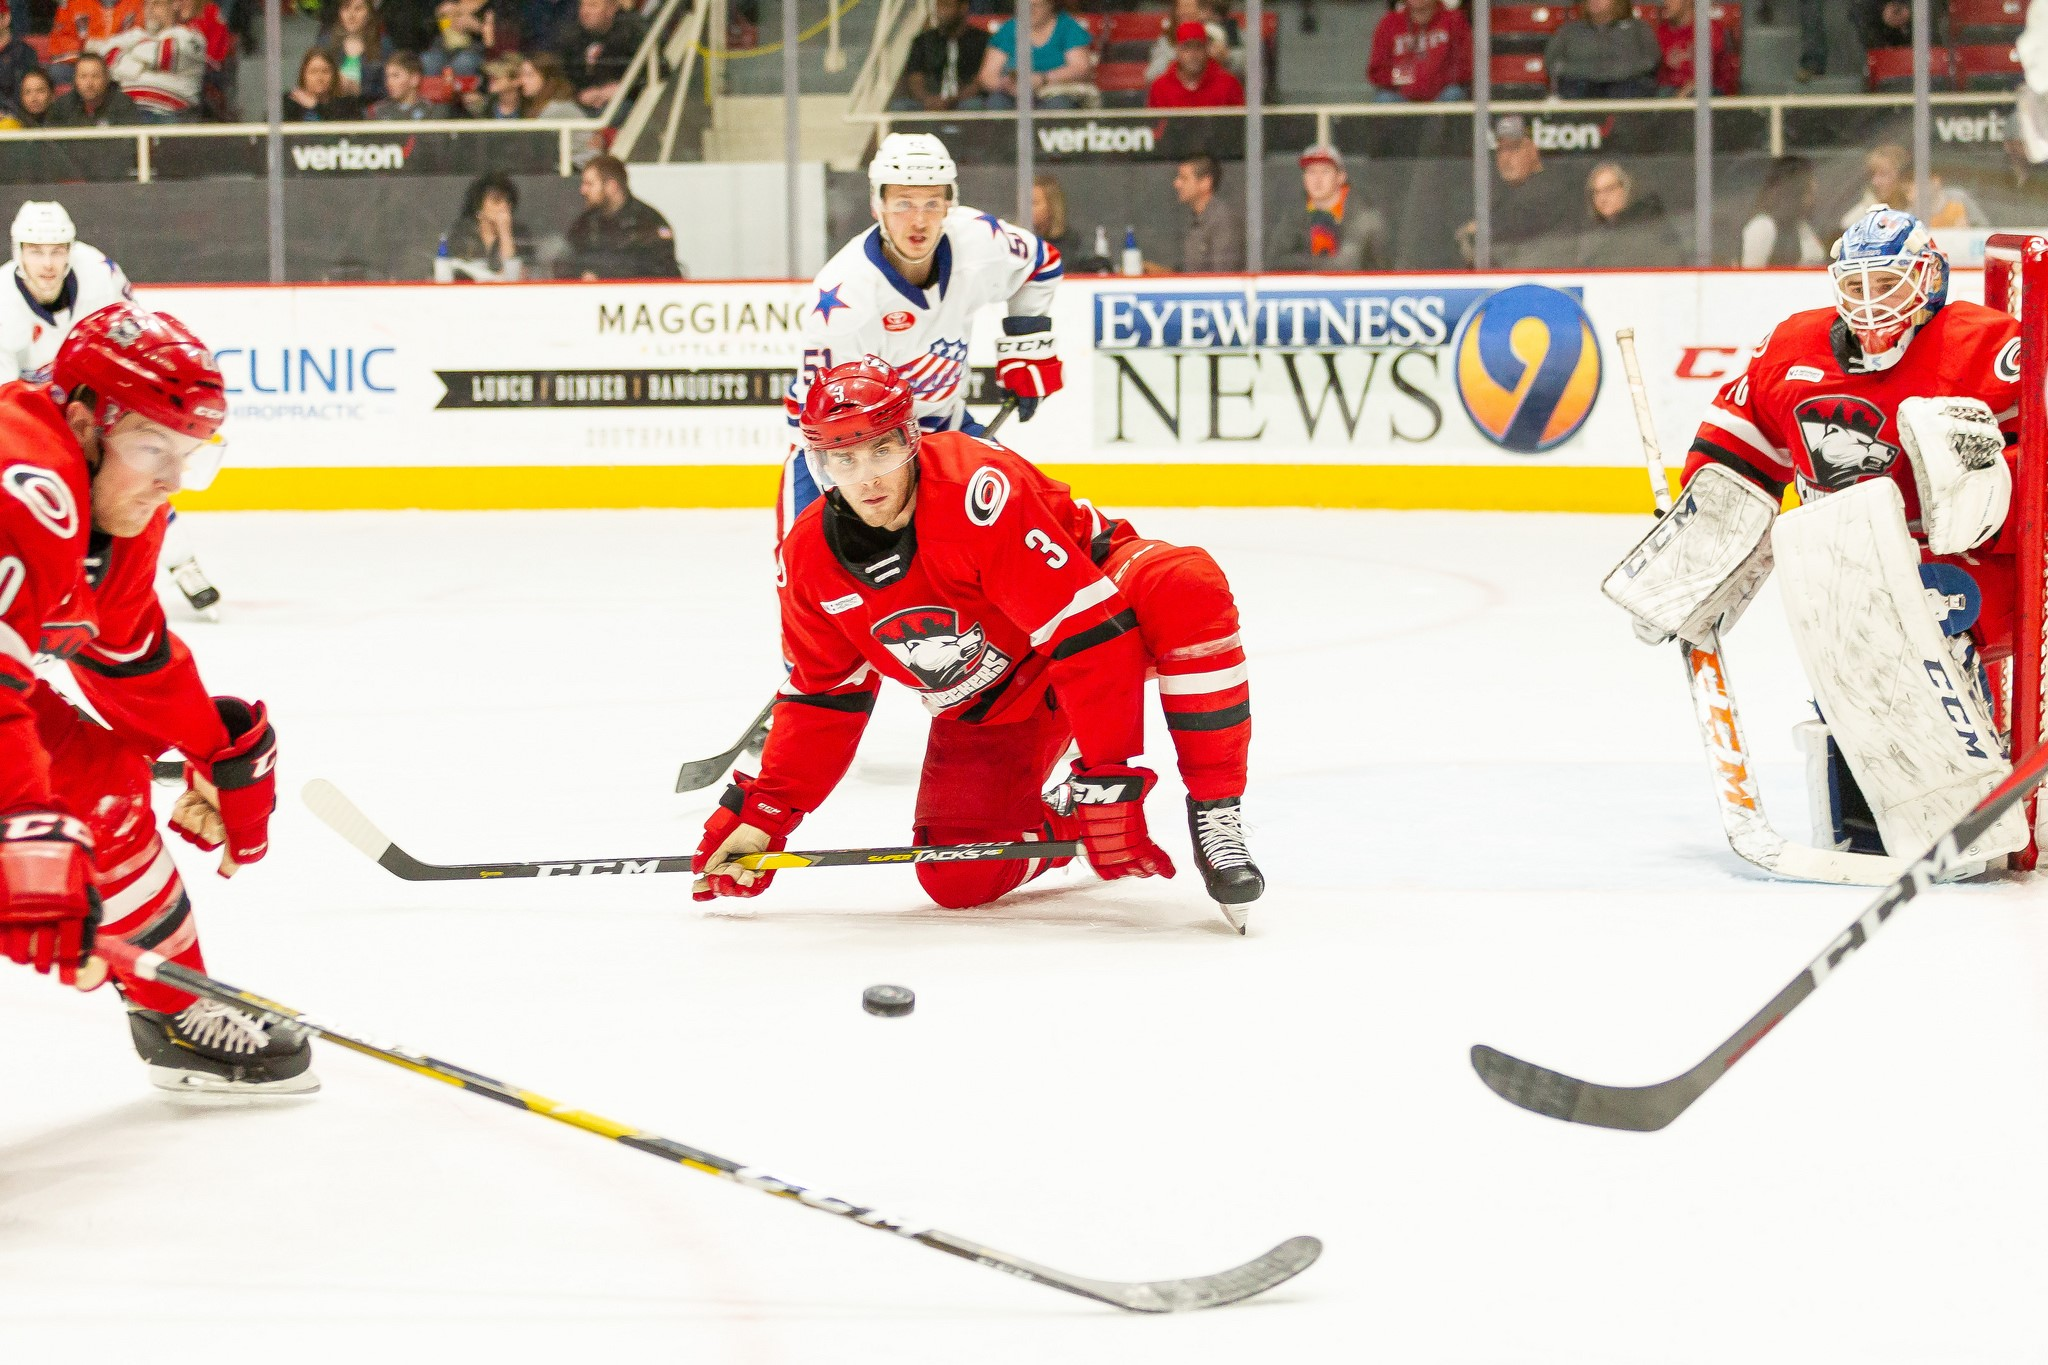 Amerks Lose Second Straight to the Checkers